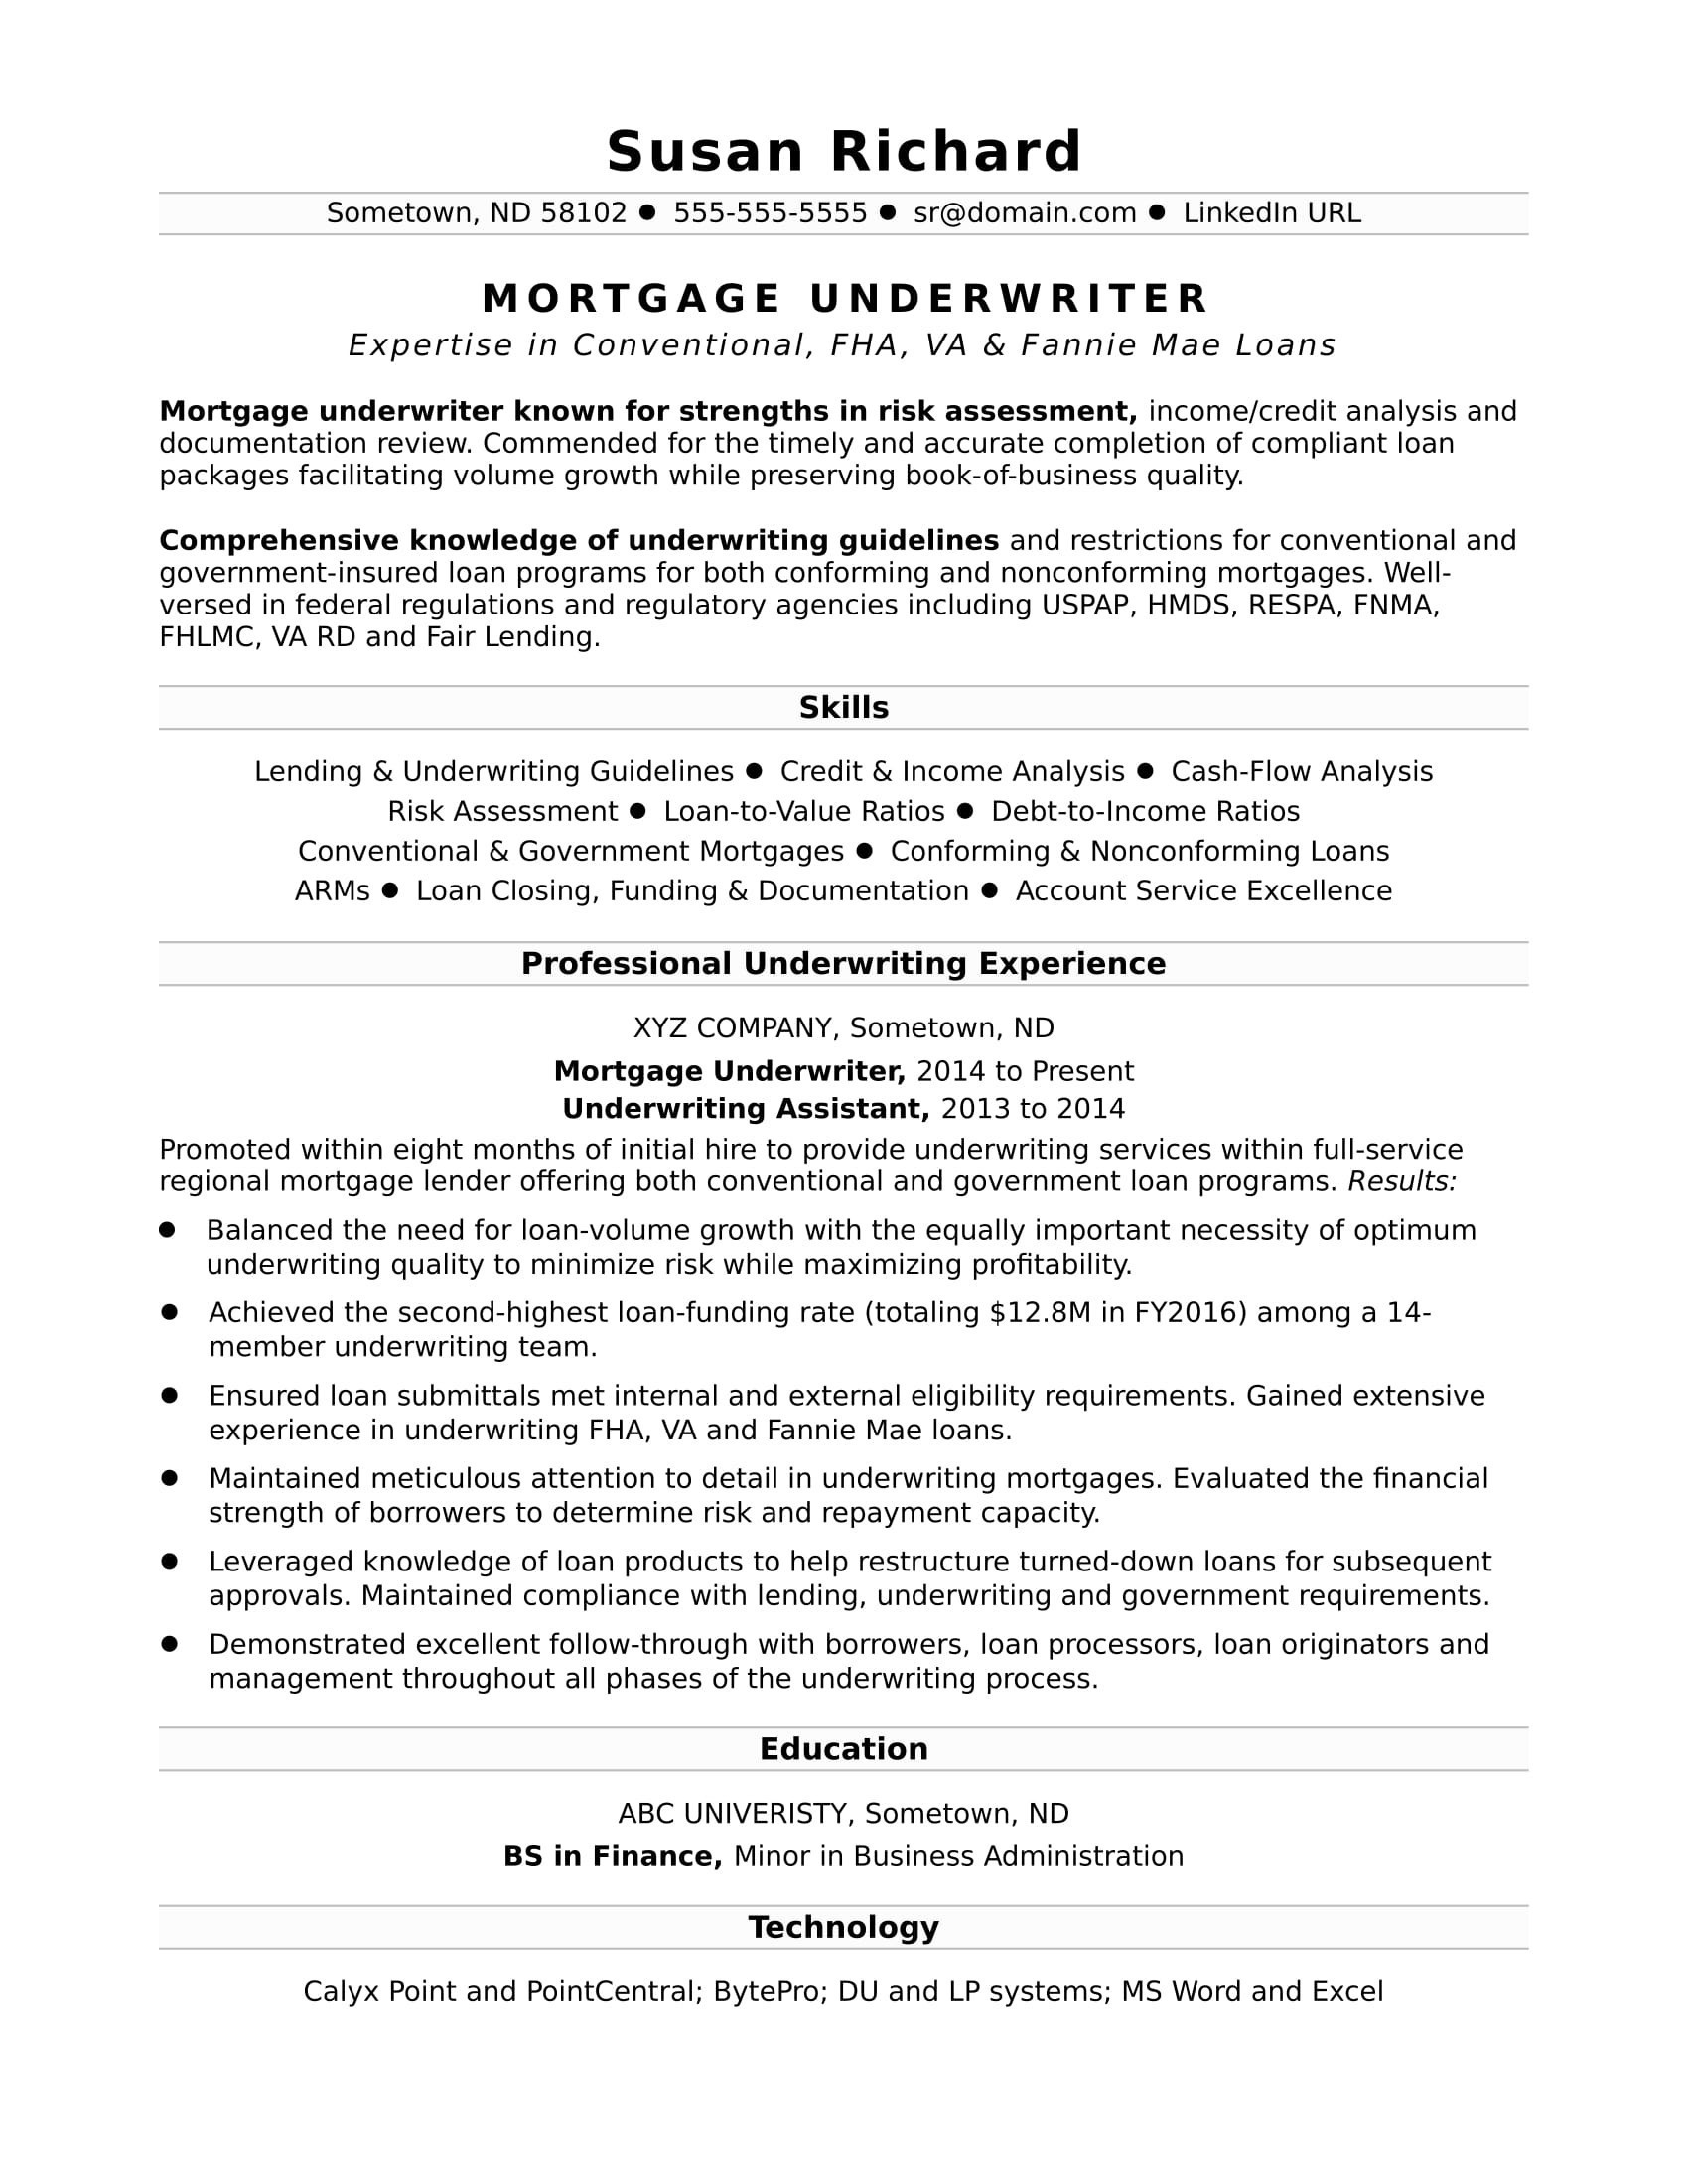 Resume Follow Up Letter Template - Best Follow Up Letter Sample Template